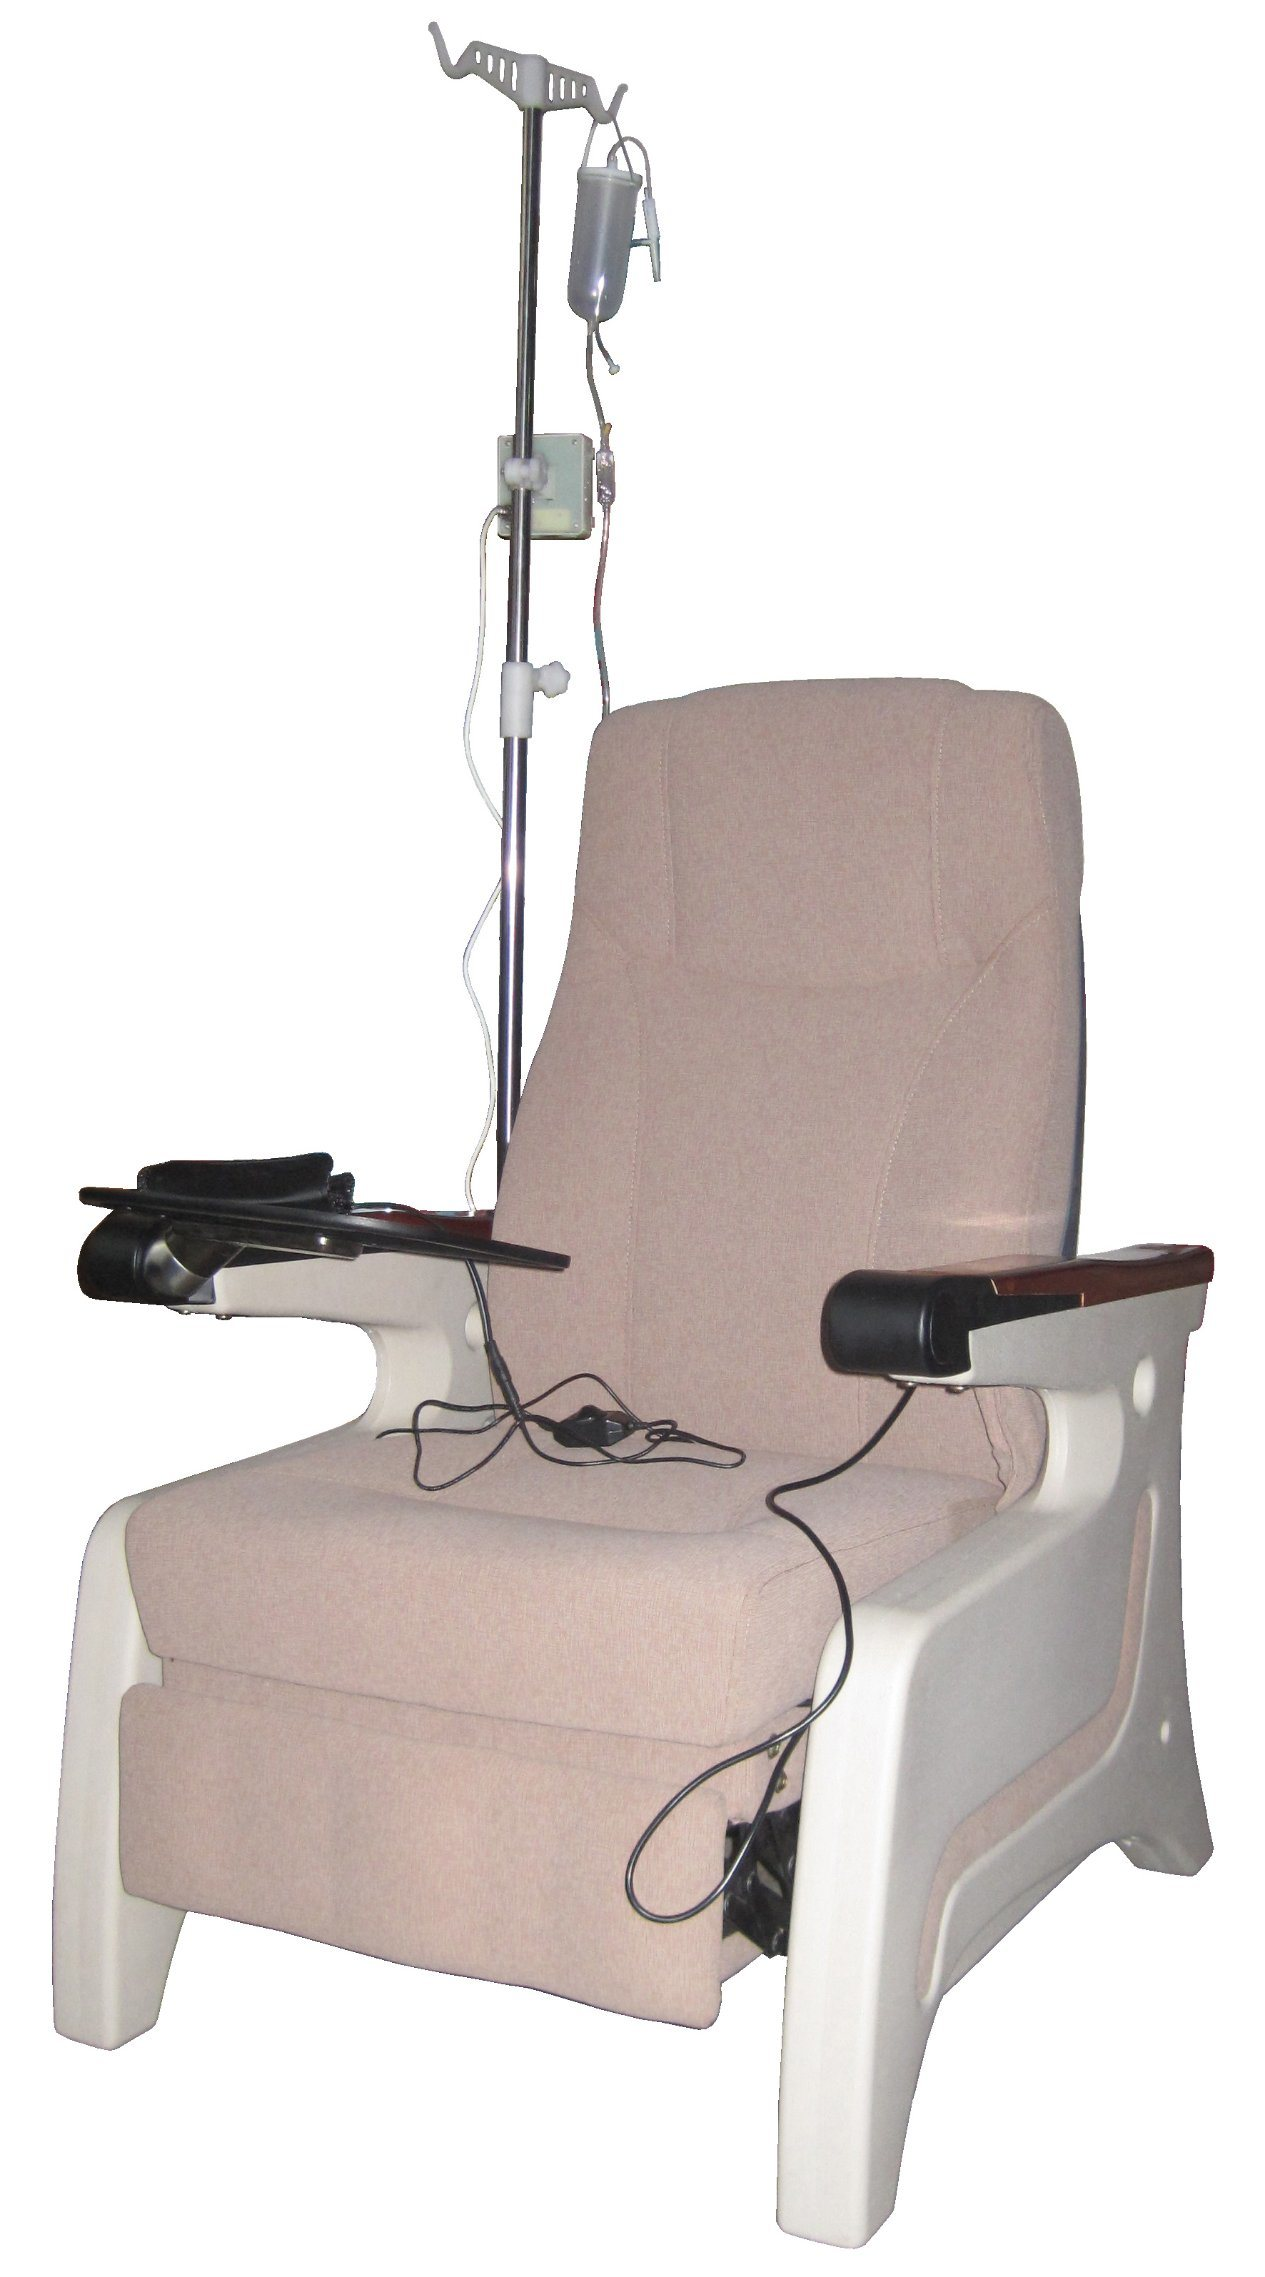 Hospital Electric Blood Donation Chair Dialysis Seating Patient Seat (P02)